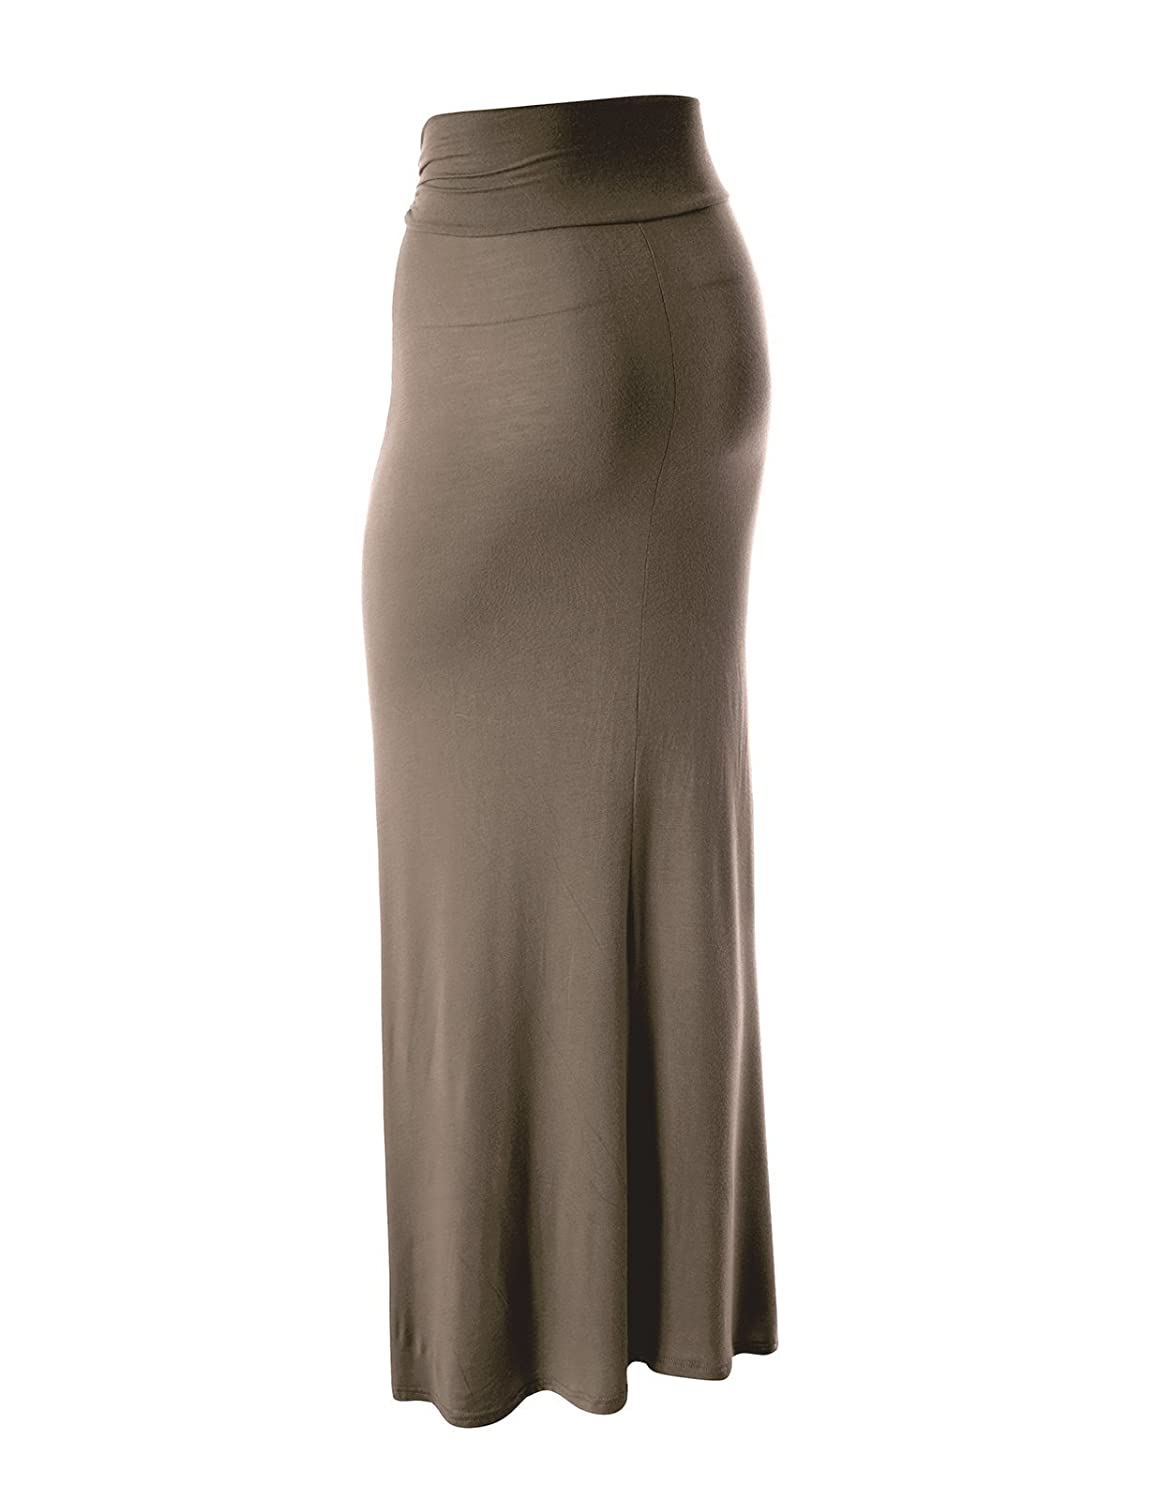 e05cd56c1 FLATSEVEN Womens High Waisted Flared Maxi Skirt (Made In USA) at Amazon  Women's Clothing store: